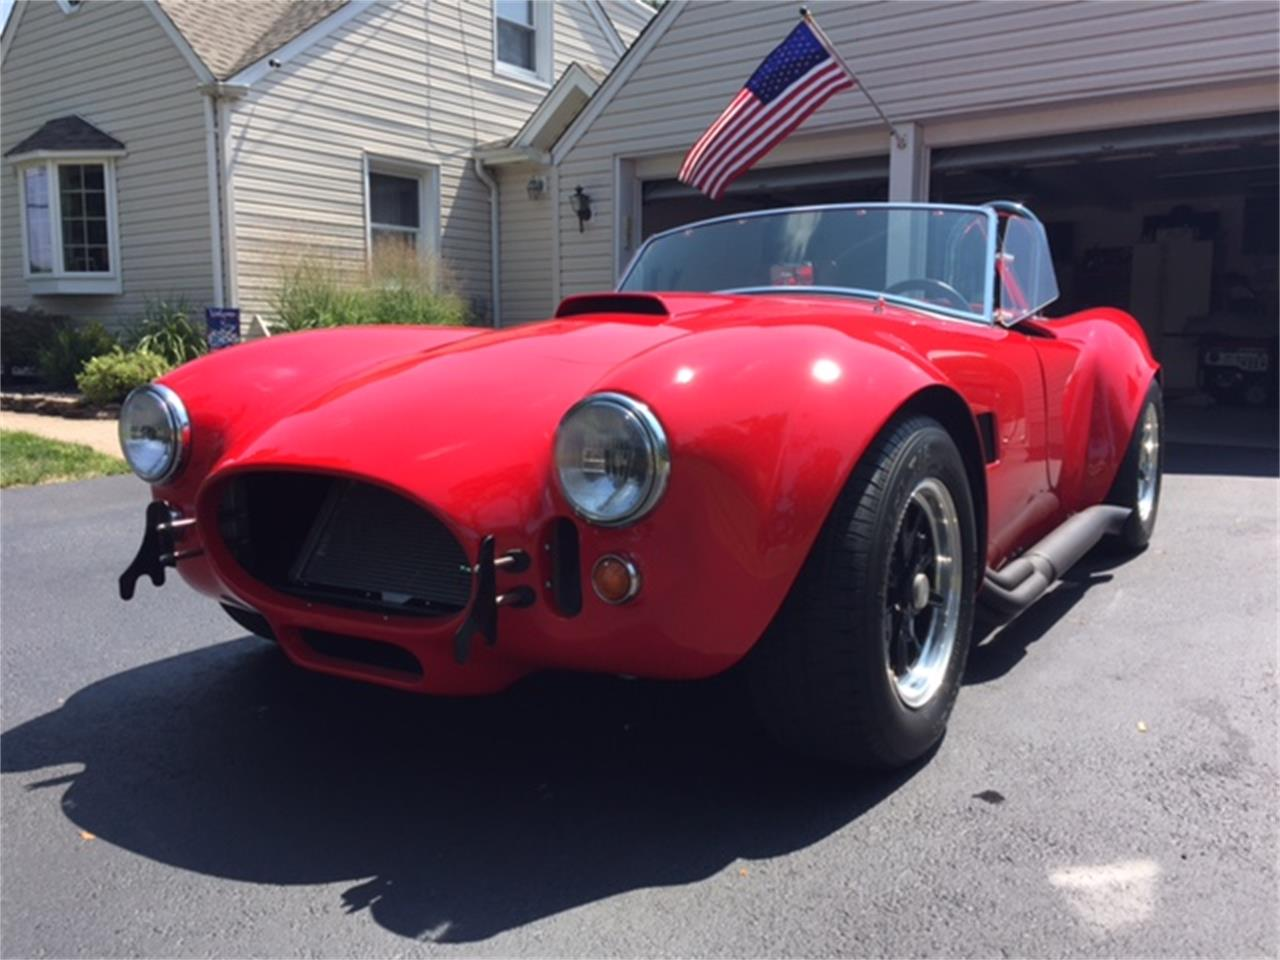 Factory Five For Sale >> 1965 Factory Five Cobra For Sale In Pequannock Nj